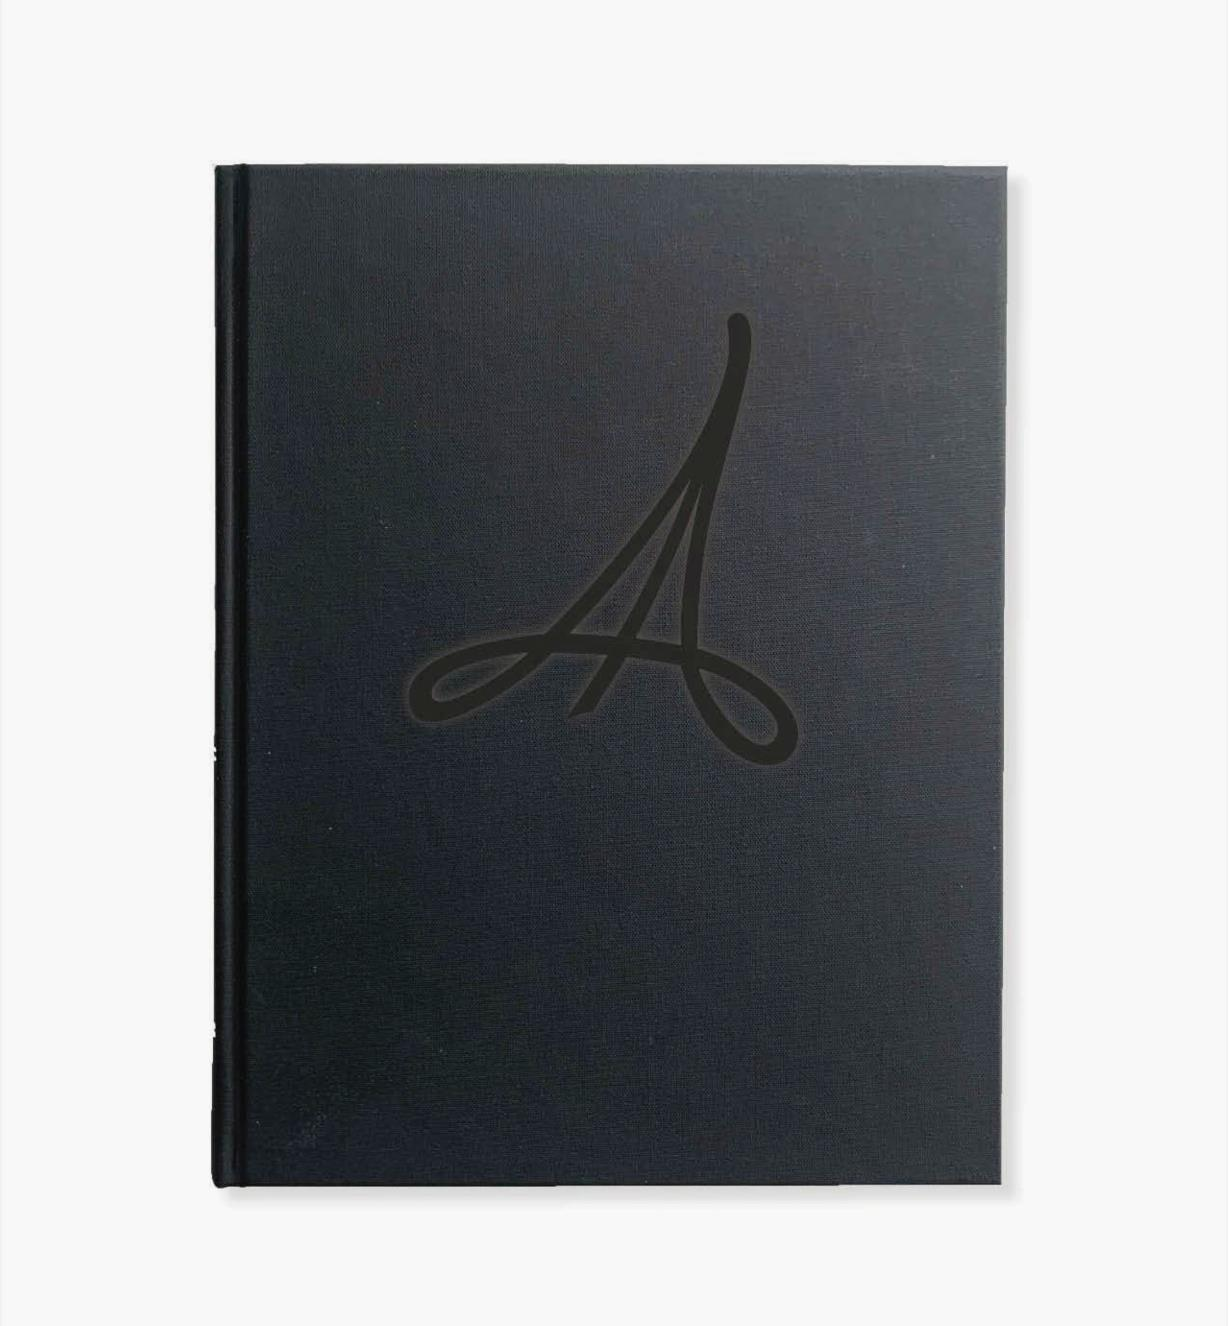 20L0365 - The Anarchist's Design Book, Expanded Edition